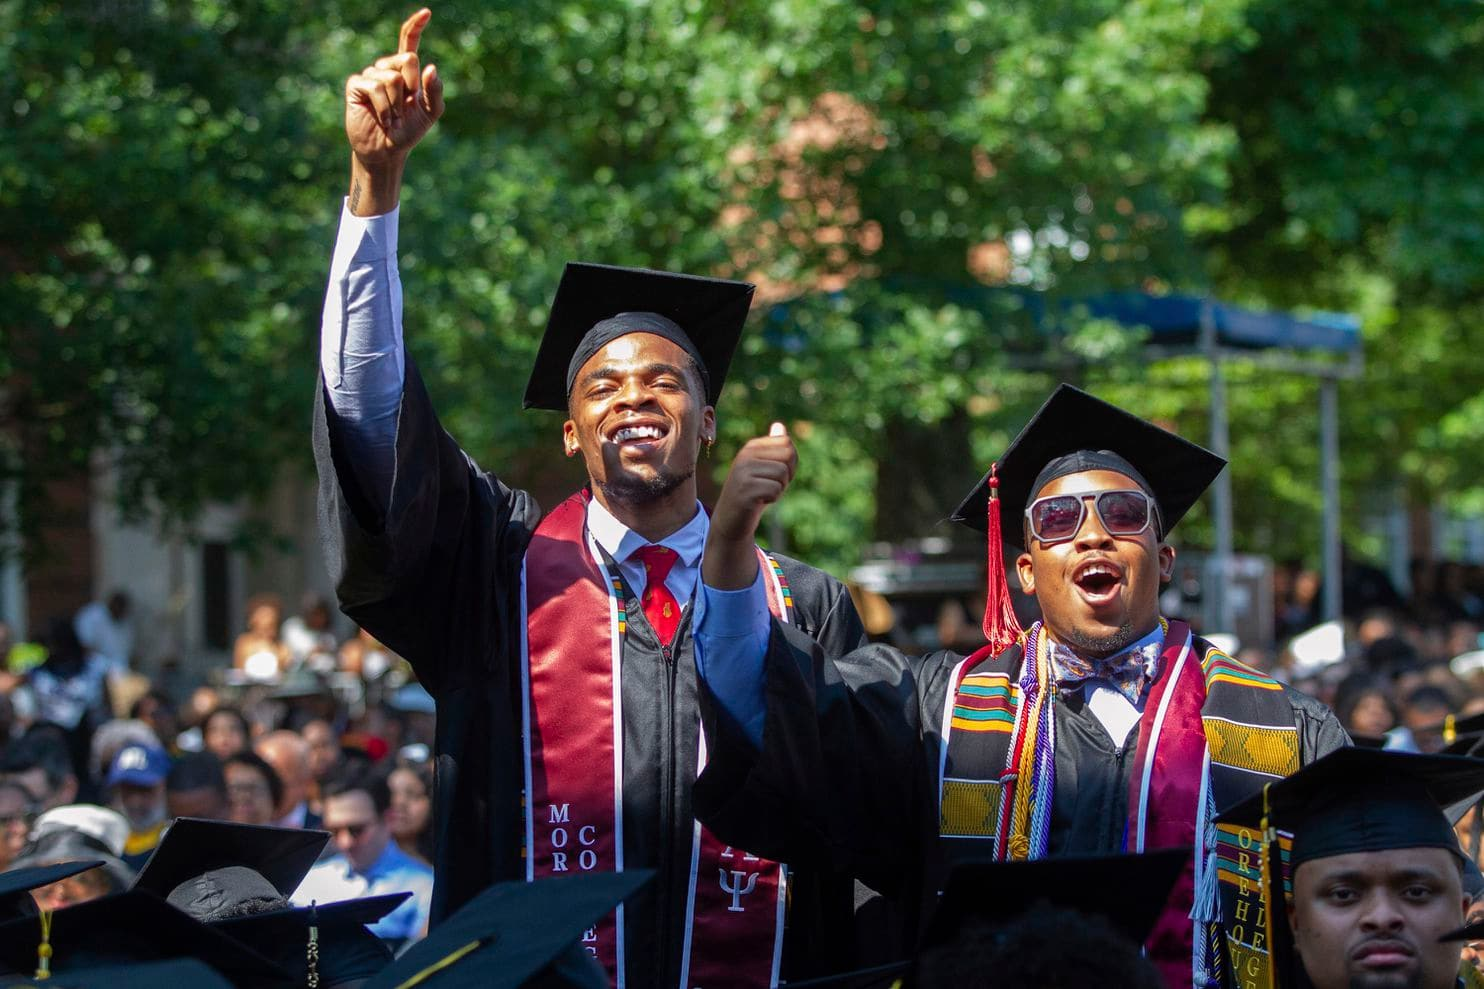 The Morehouse College graduates after hearing billionaire and philanthropist Robert F. Smith say that he would pay student loan debts.